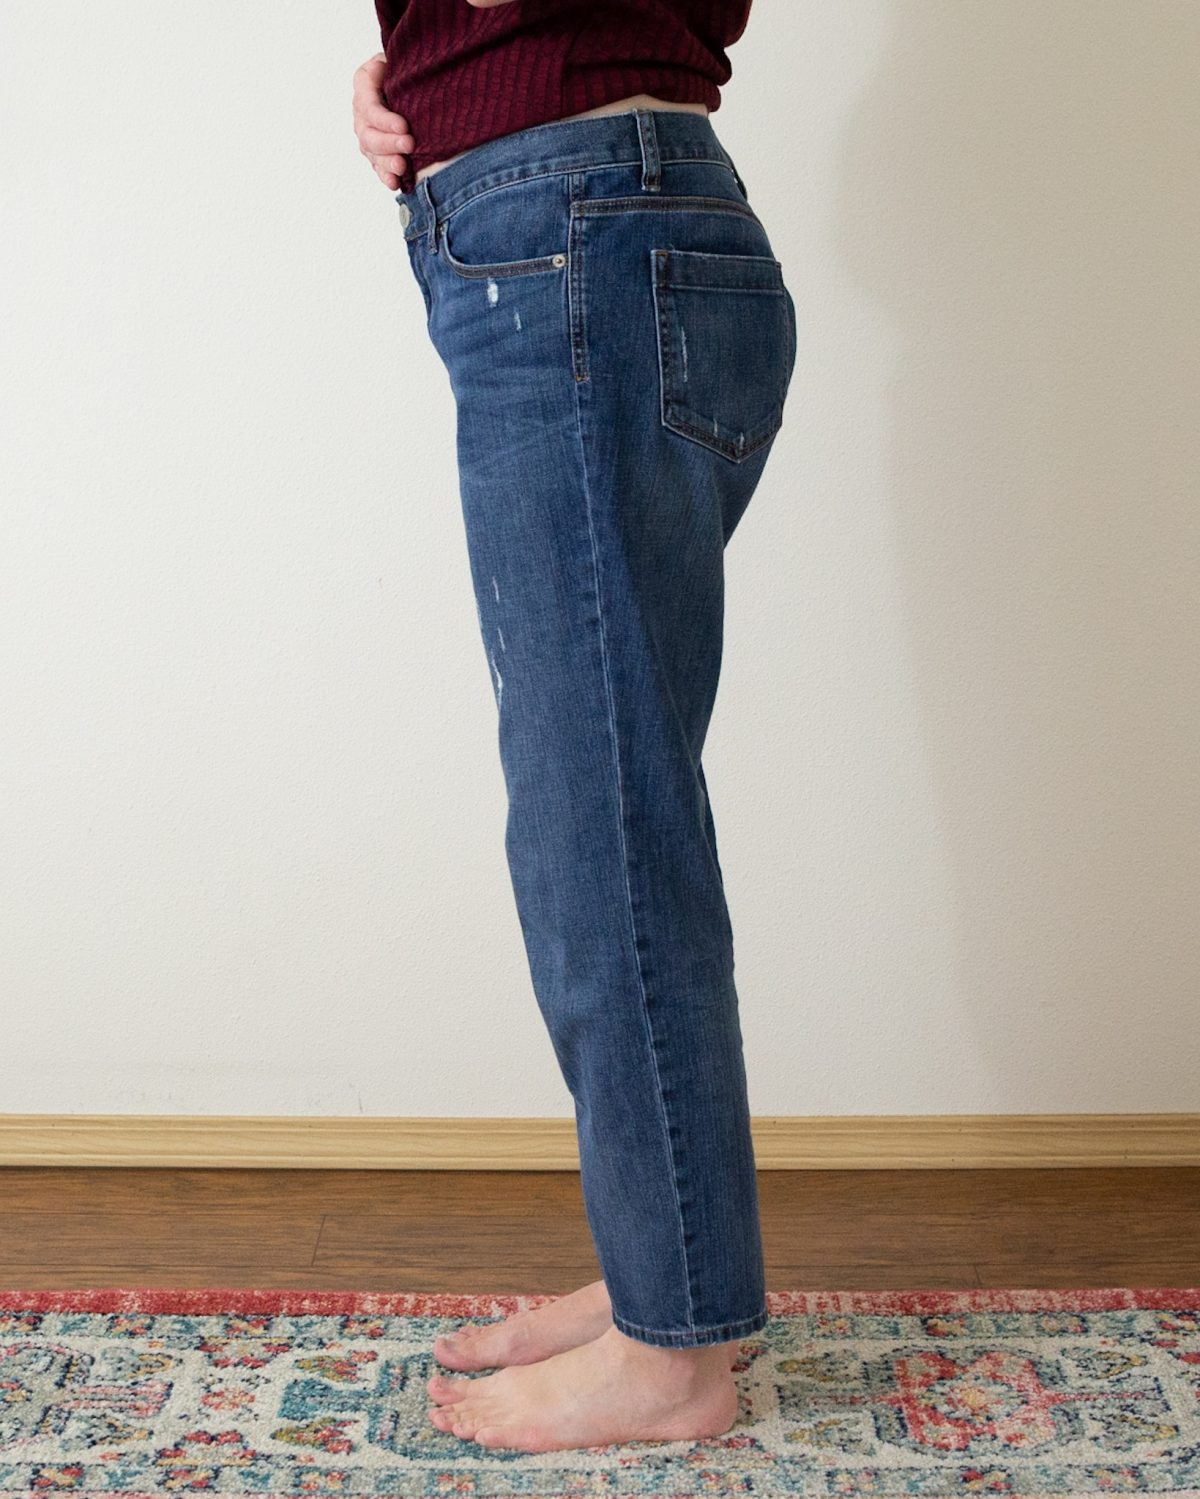 My First Time Taking In Jeans At The Waist